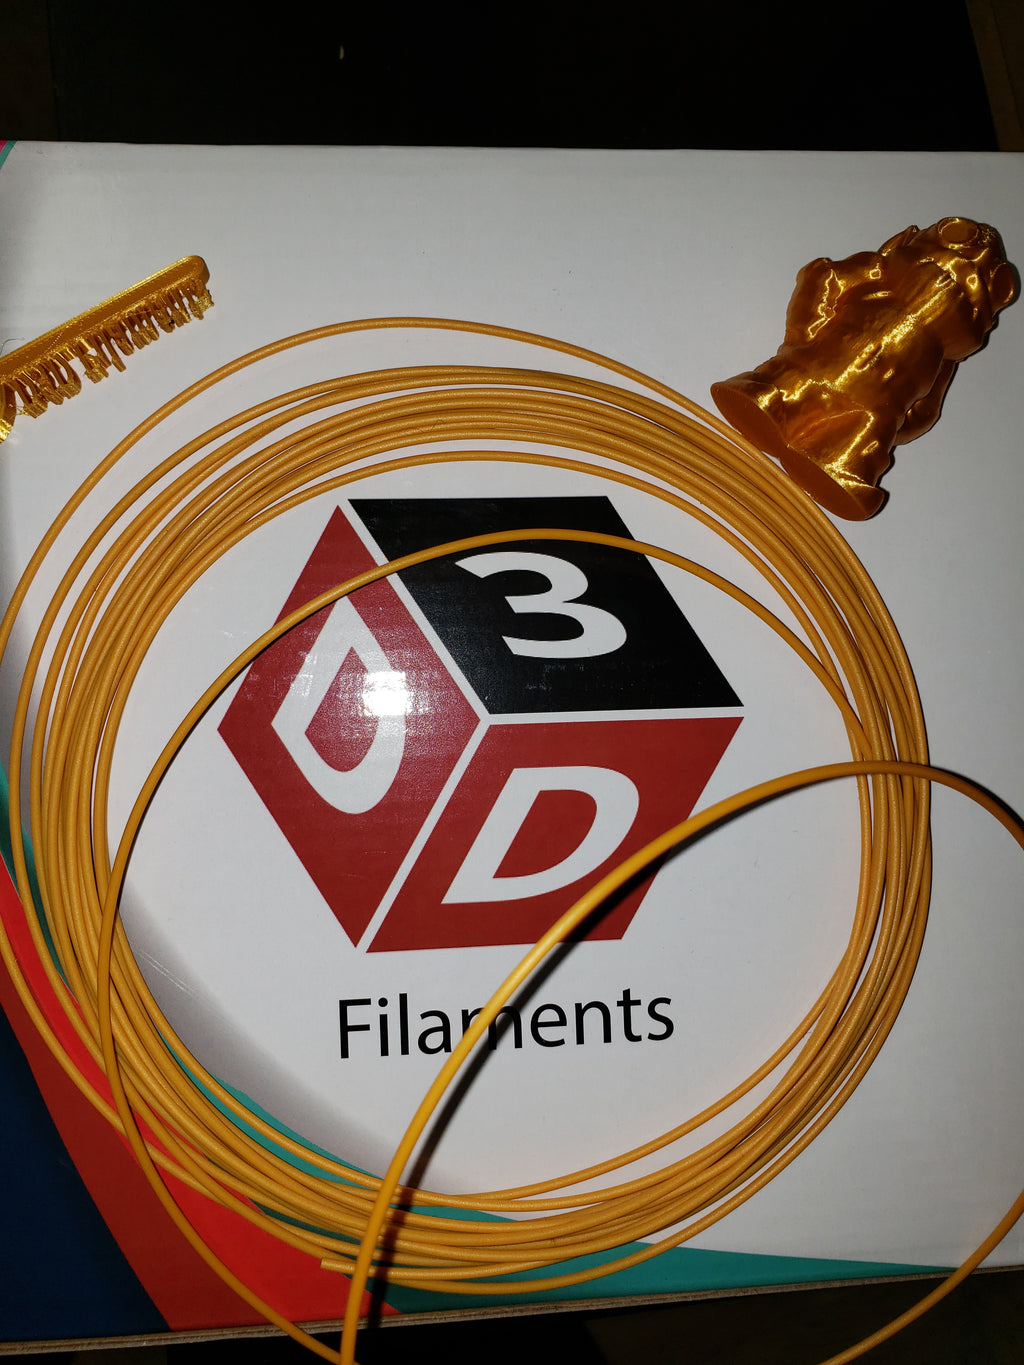 3D Printing with Silk Filaments